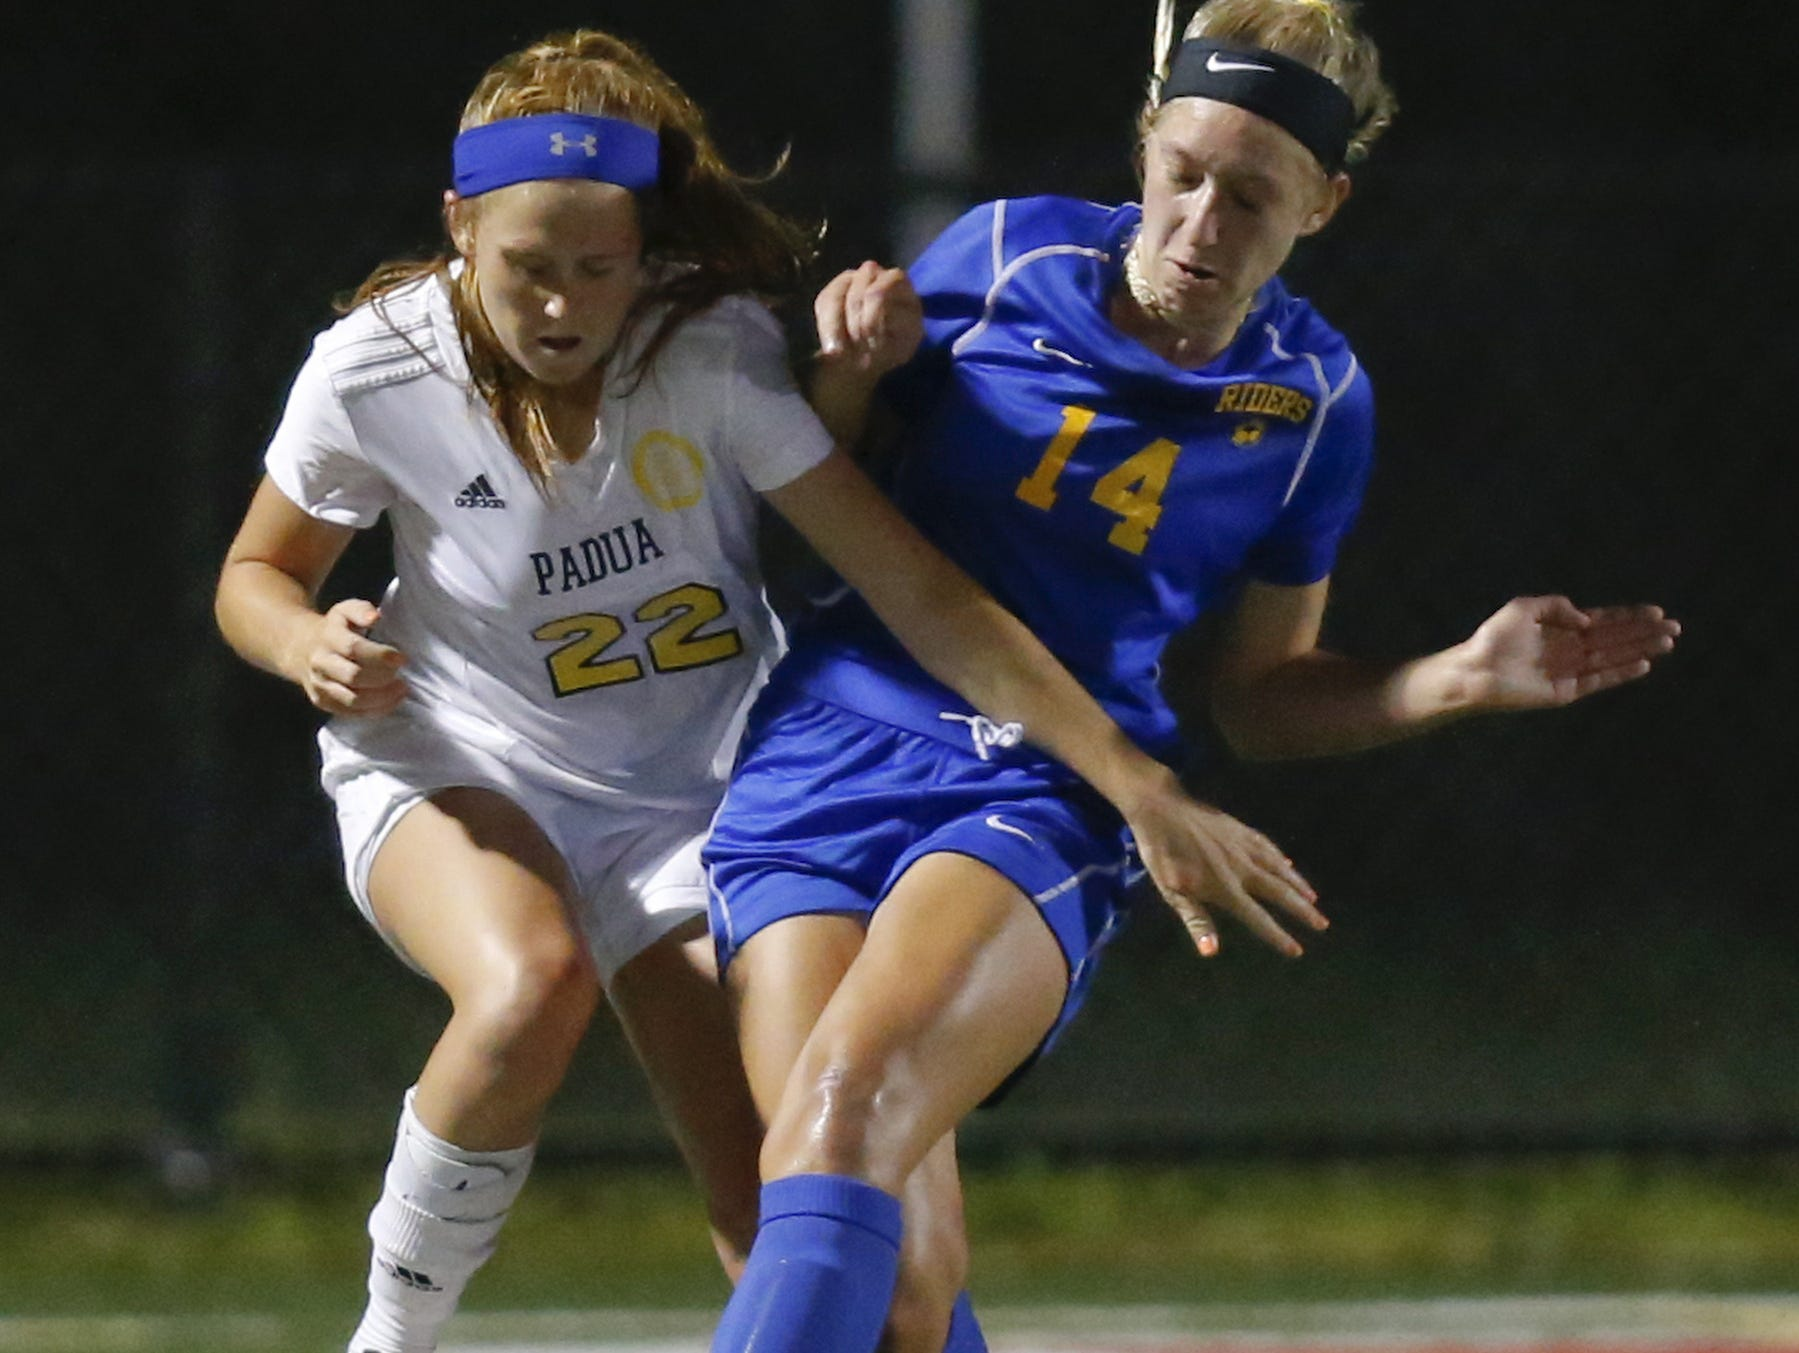 Padua's Mackenzie Scully (left) and Caesar Rodney's Kimberly Glasser vie for possession in DIAA Division I state title game at Smyrna High.